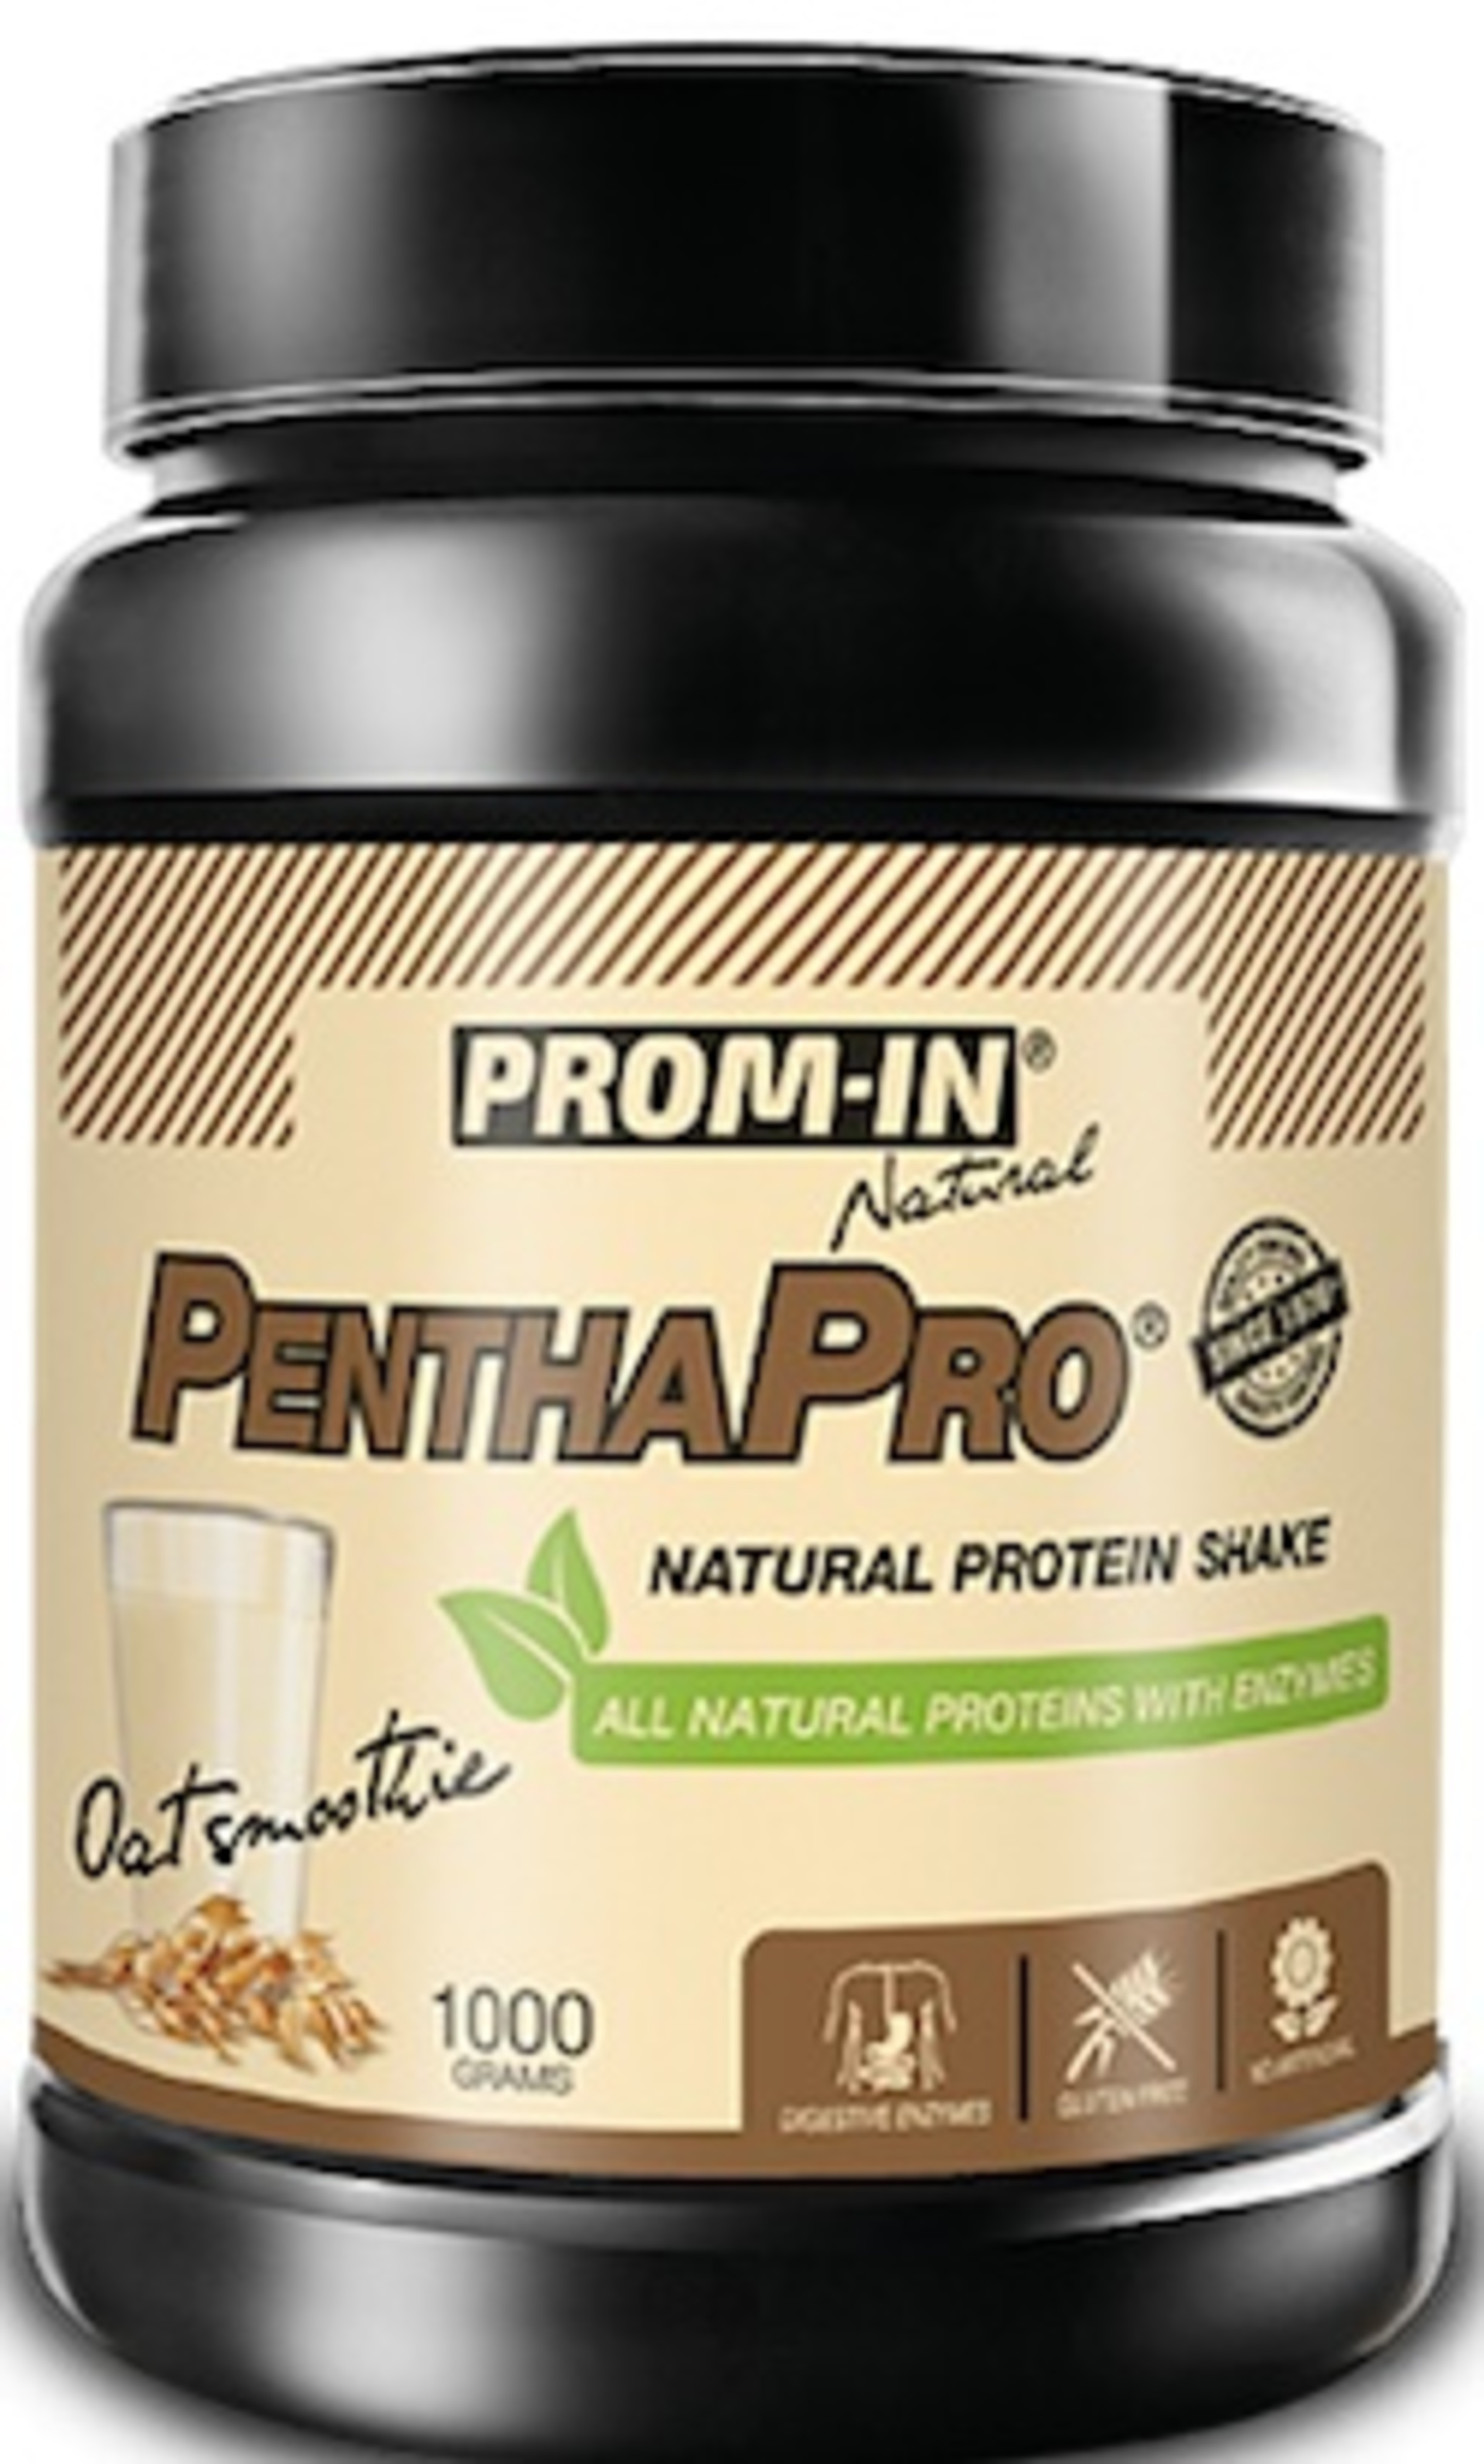 Prom-IN PenthaPro natural 1000 g